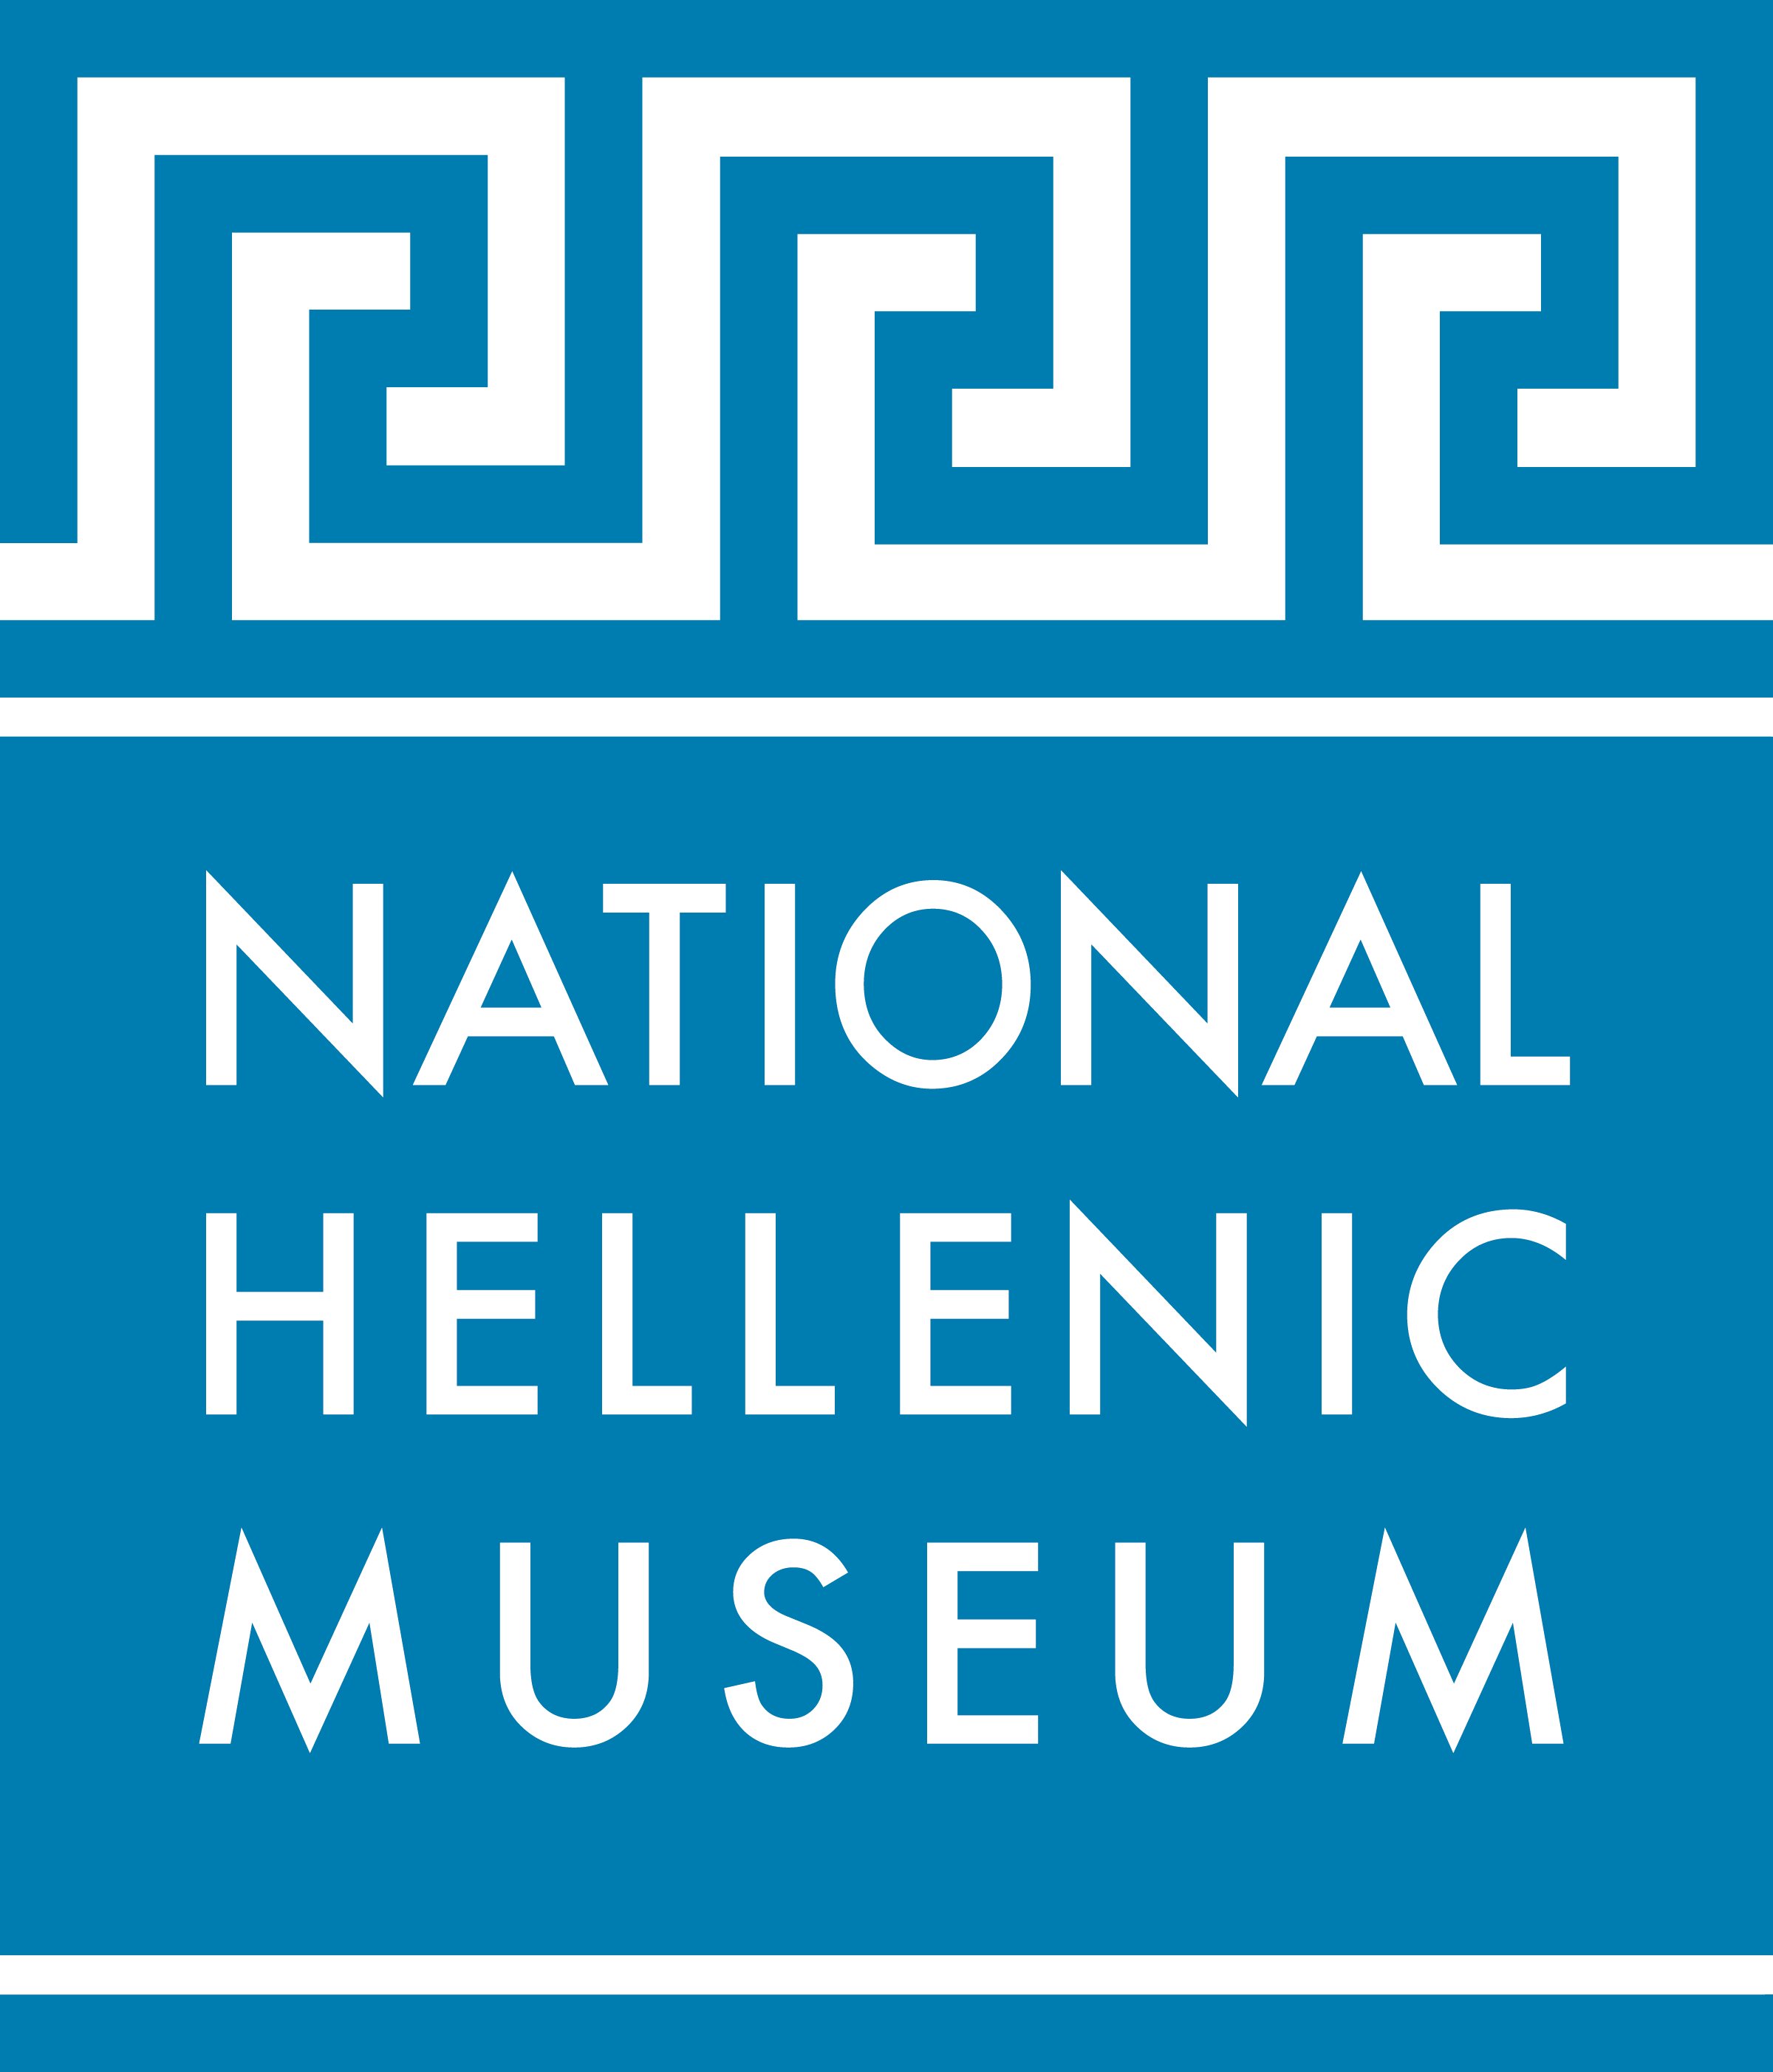 National Hellenic Museum logo